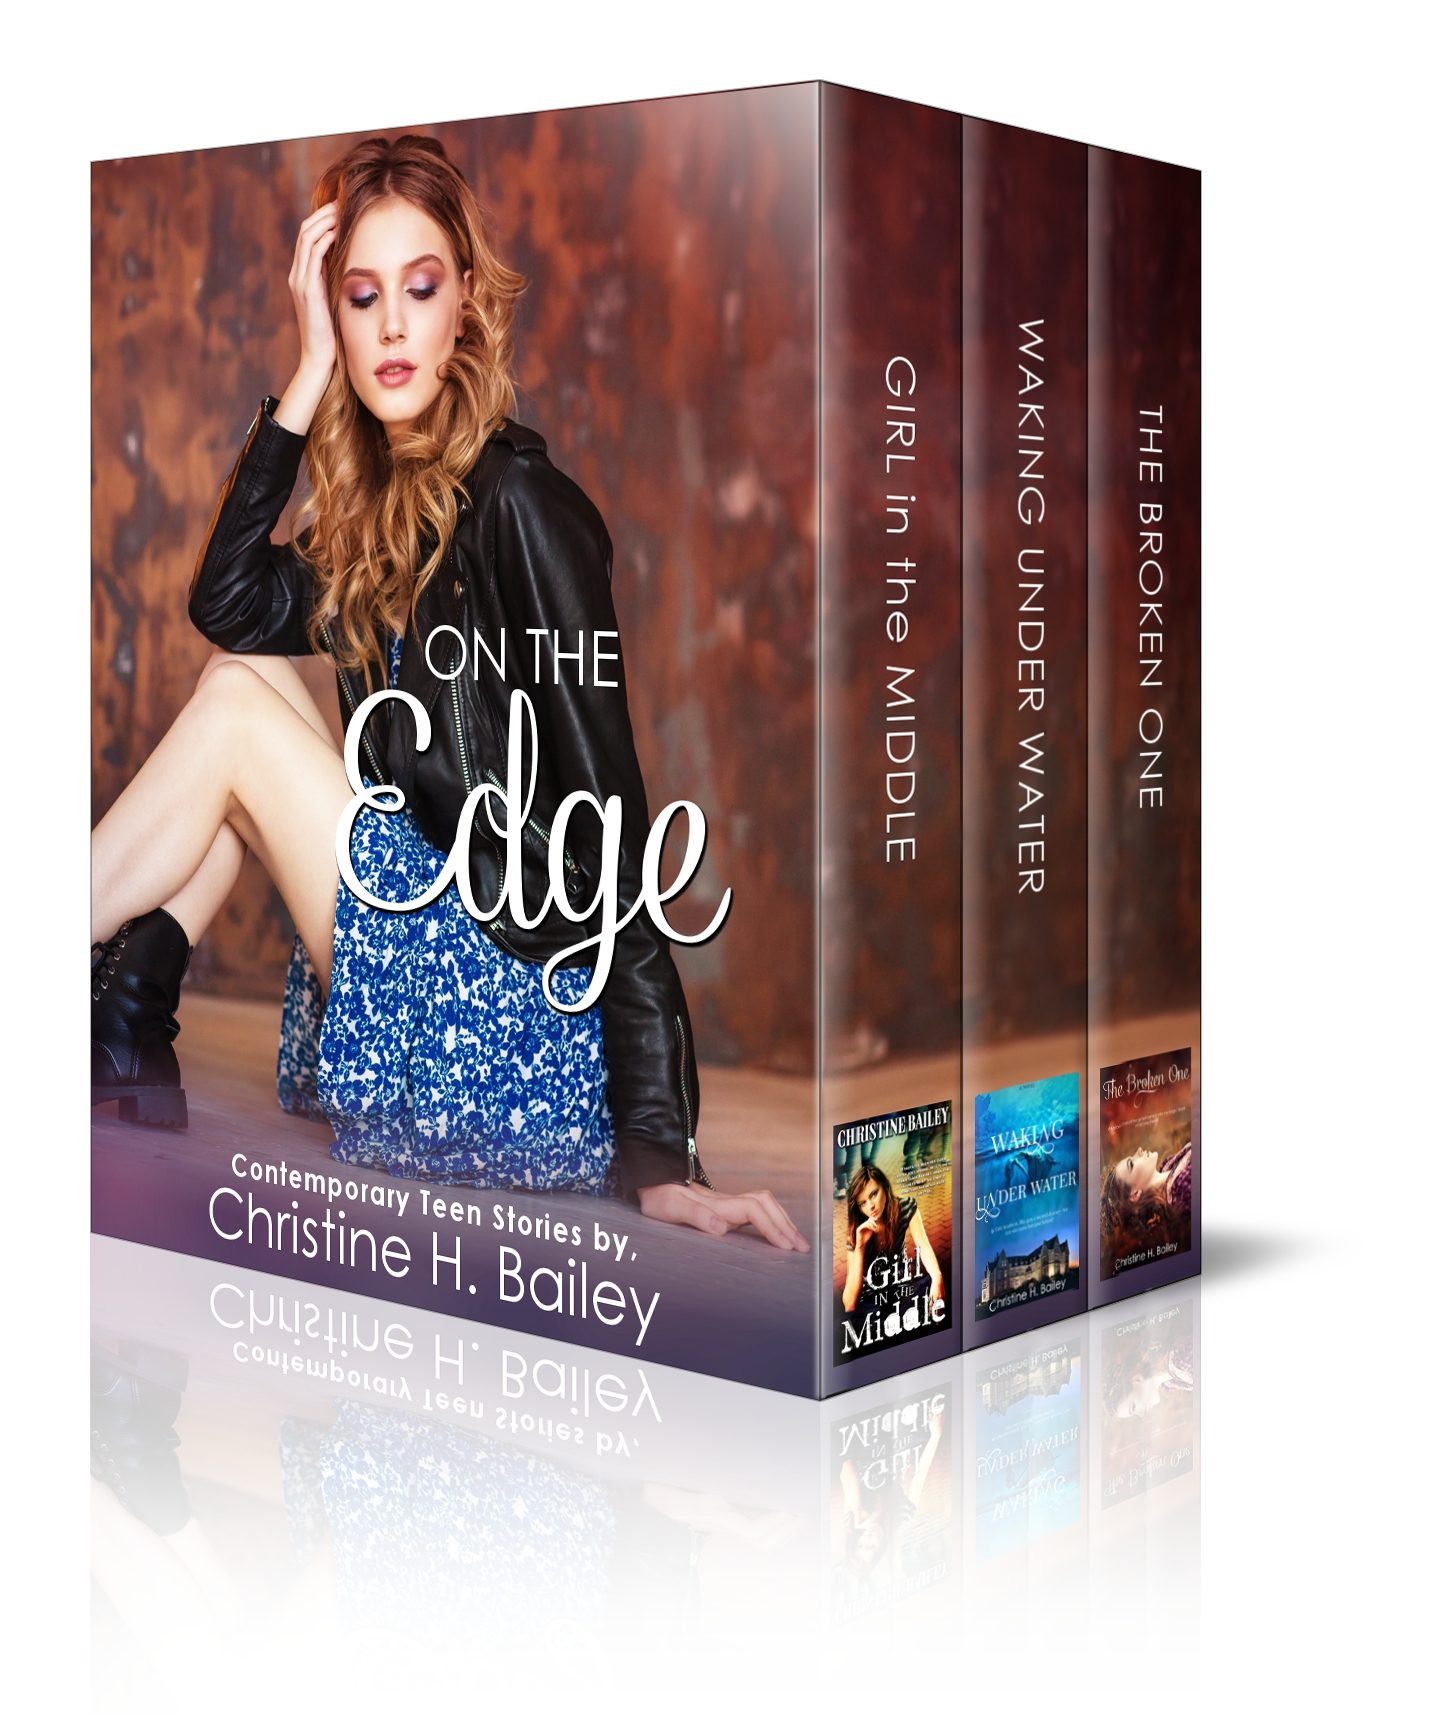 OnTheEdge3DBoxed